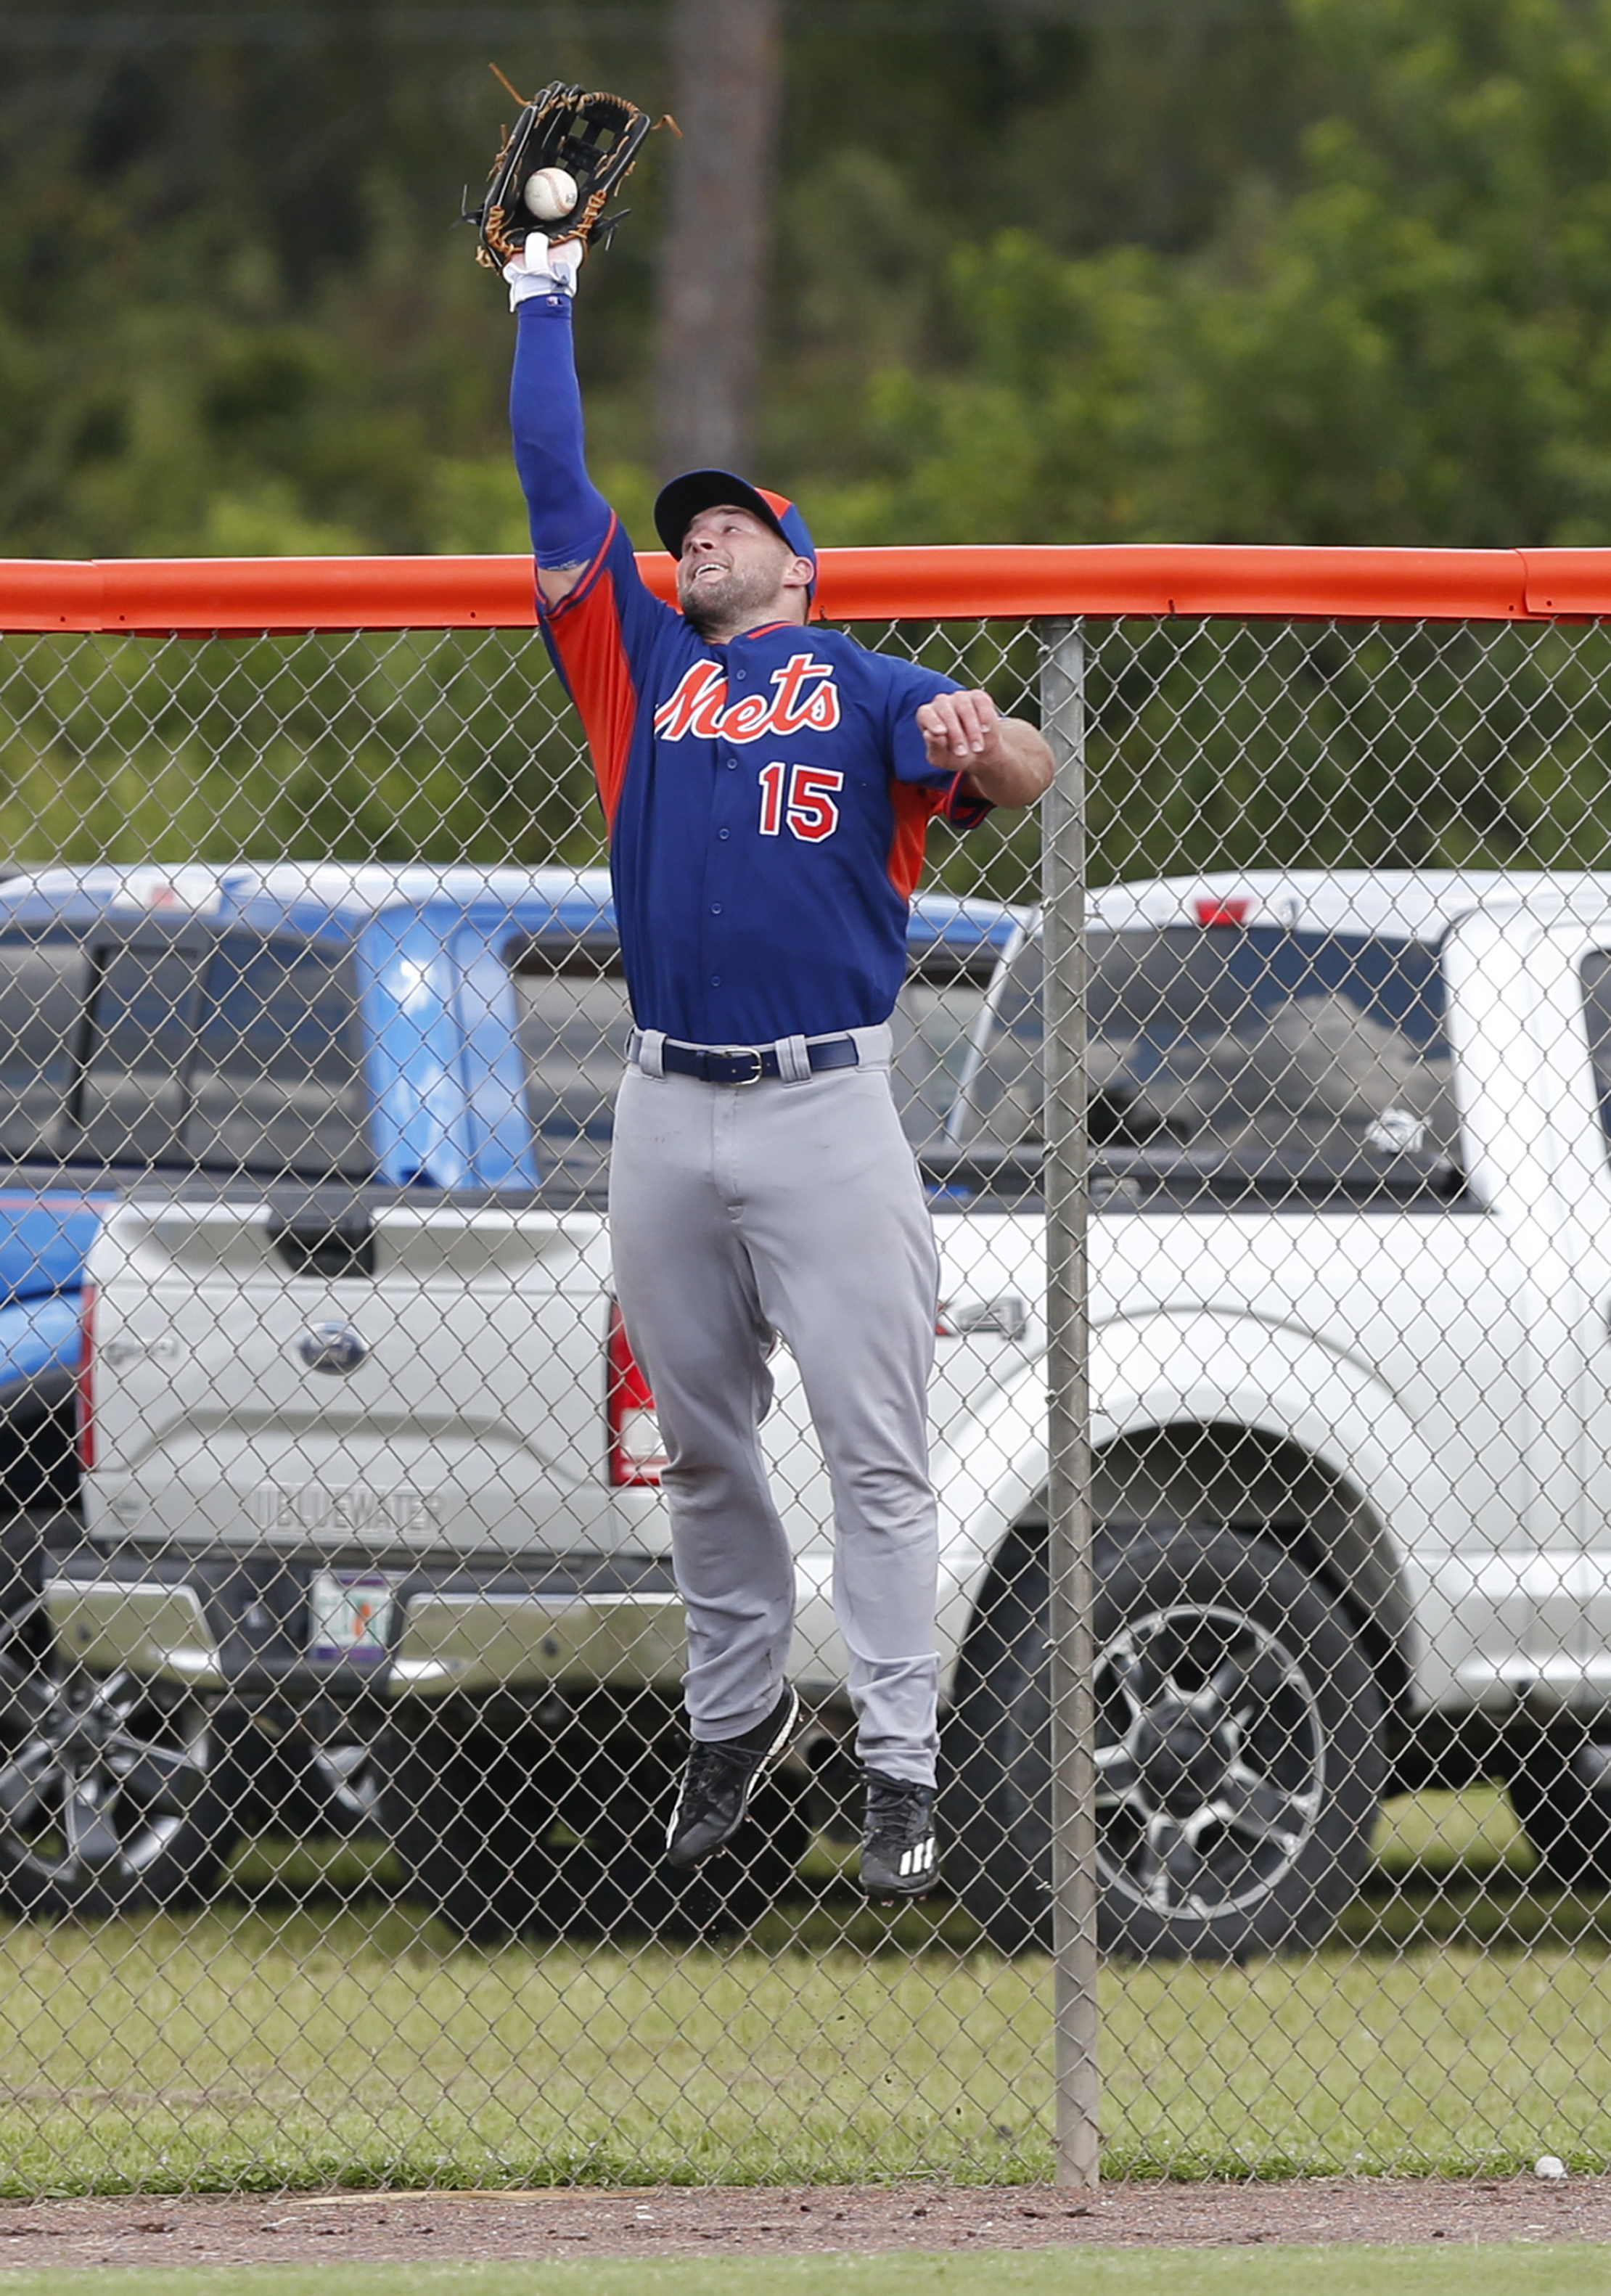 Tim Tebow catches a ball at the fence during a drill at the New York Mets' complex, Monday, Sept. 19, 2016, in Port St. Lucie, Fla. The 2007 Heisman Trophy winner and former NFL quarterback got to the complex early Monday, and started his first workout as